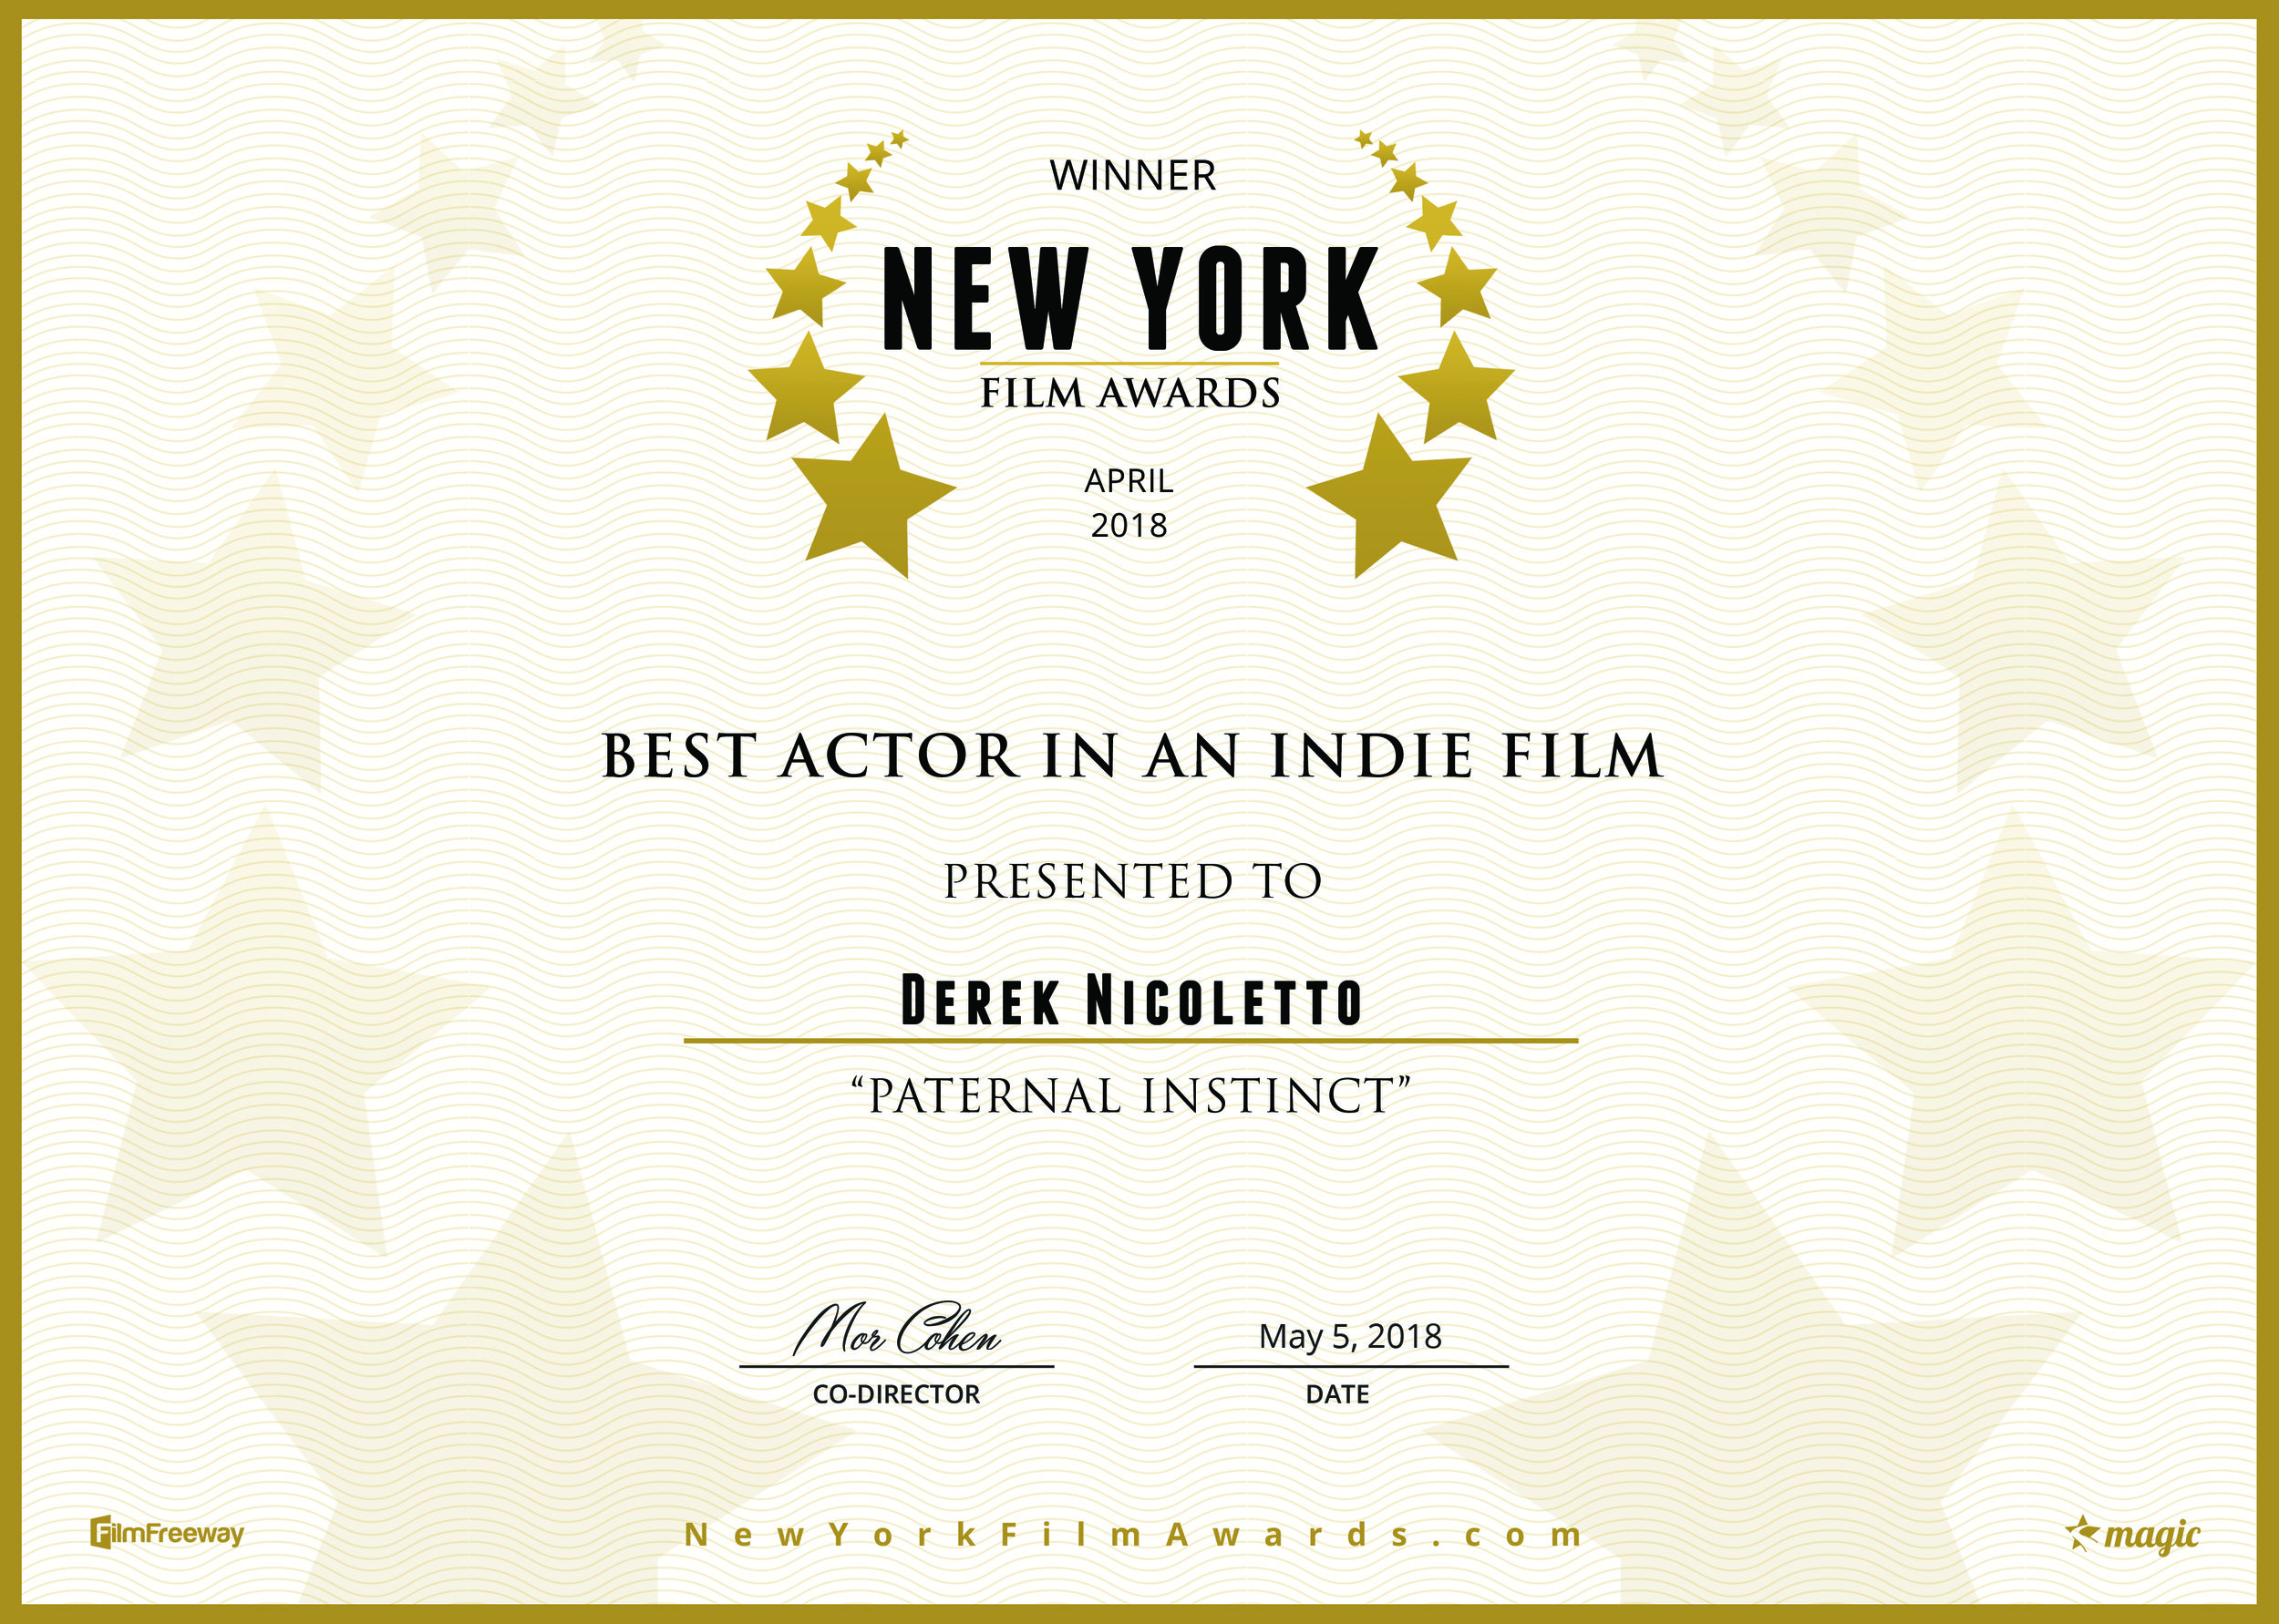 - MAY 2018: The New York Film Awards have named Derek Nicoletto